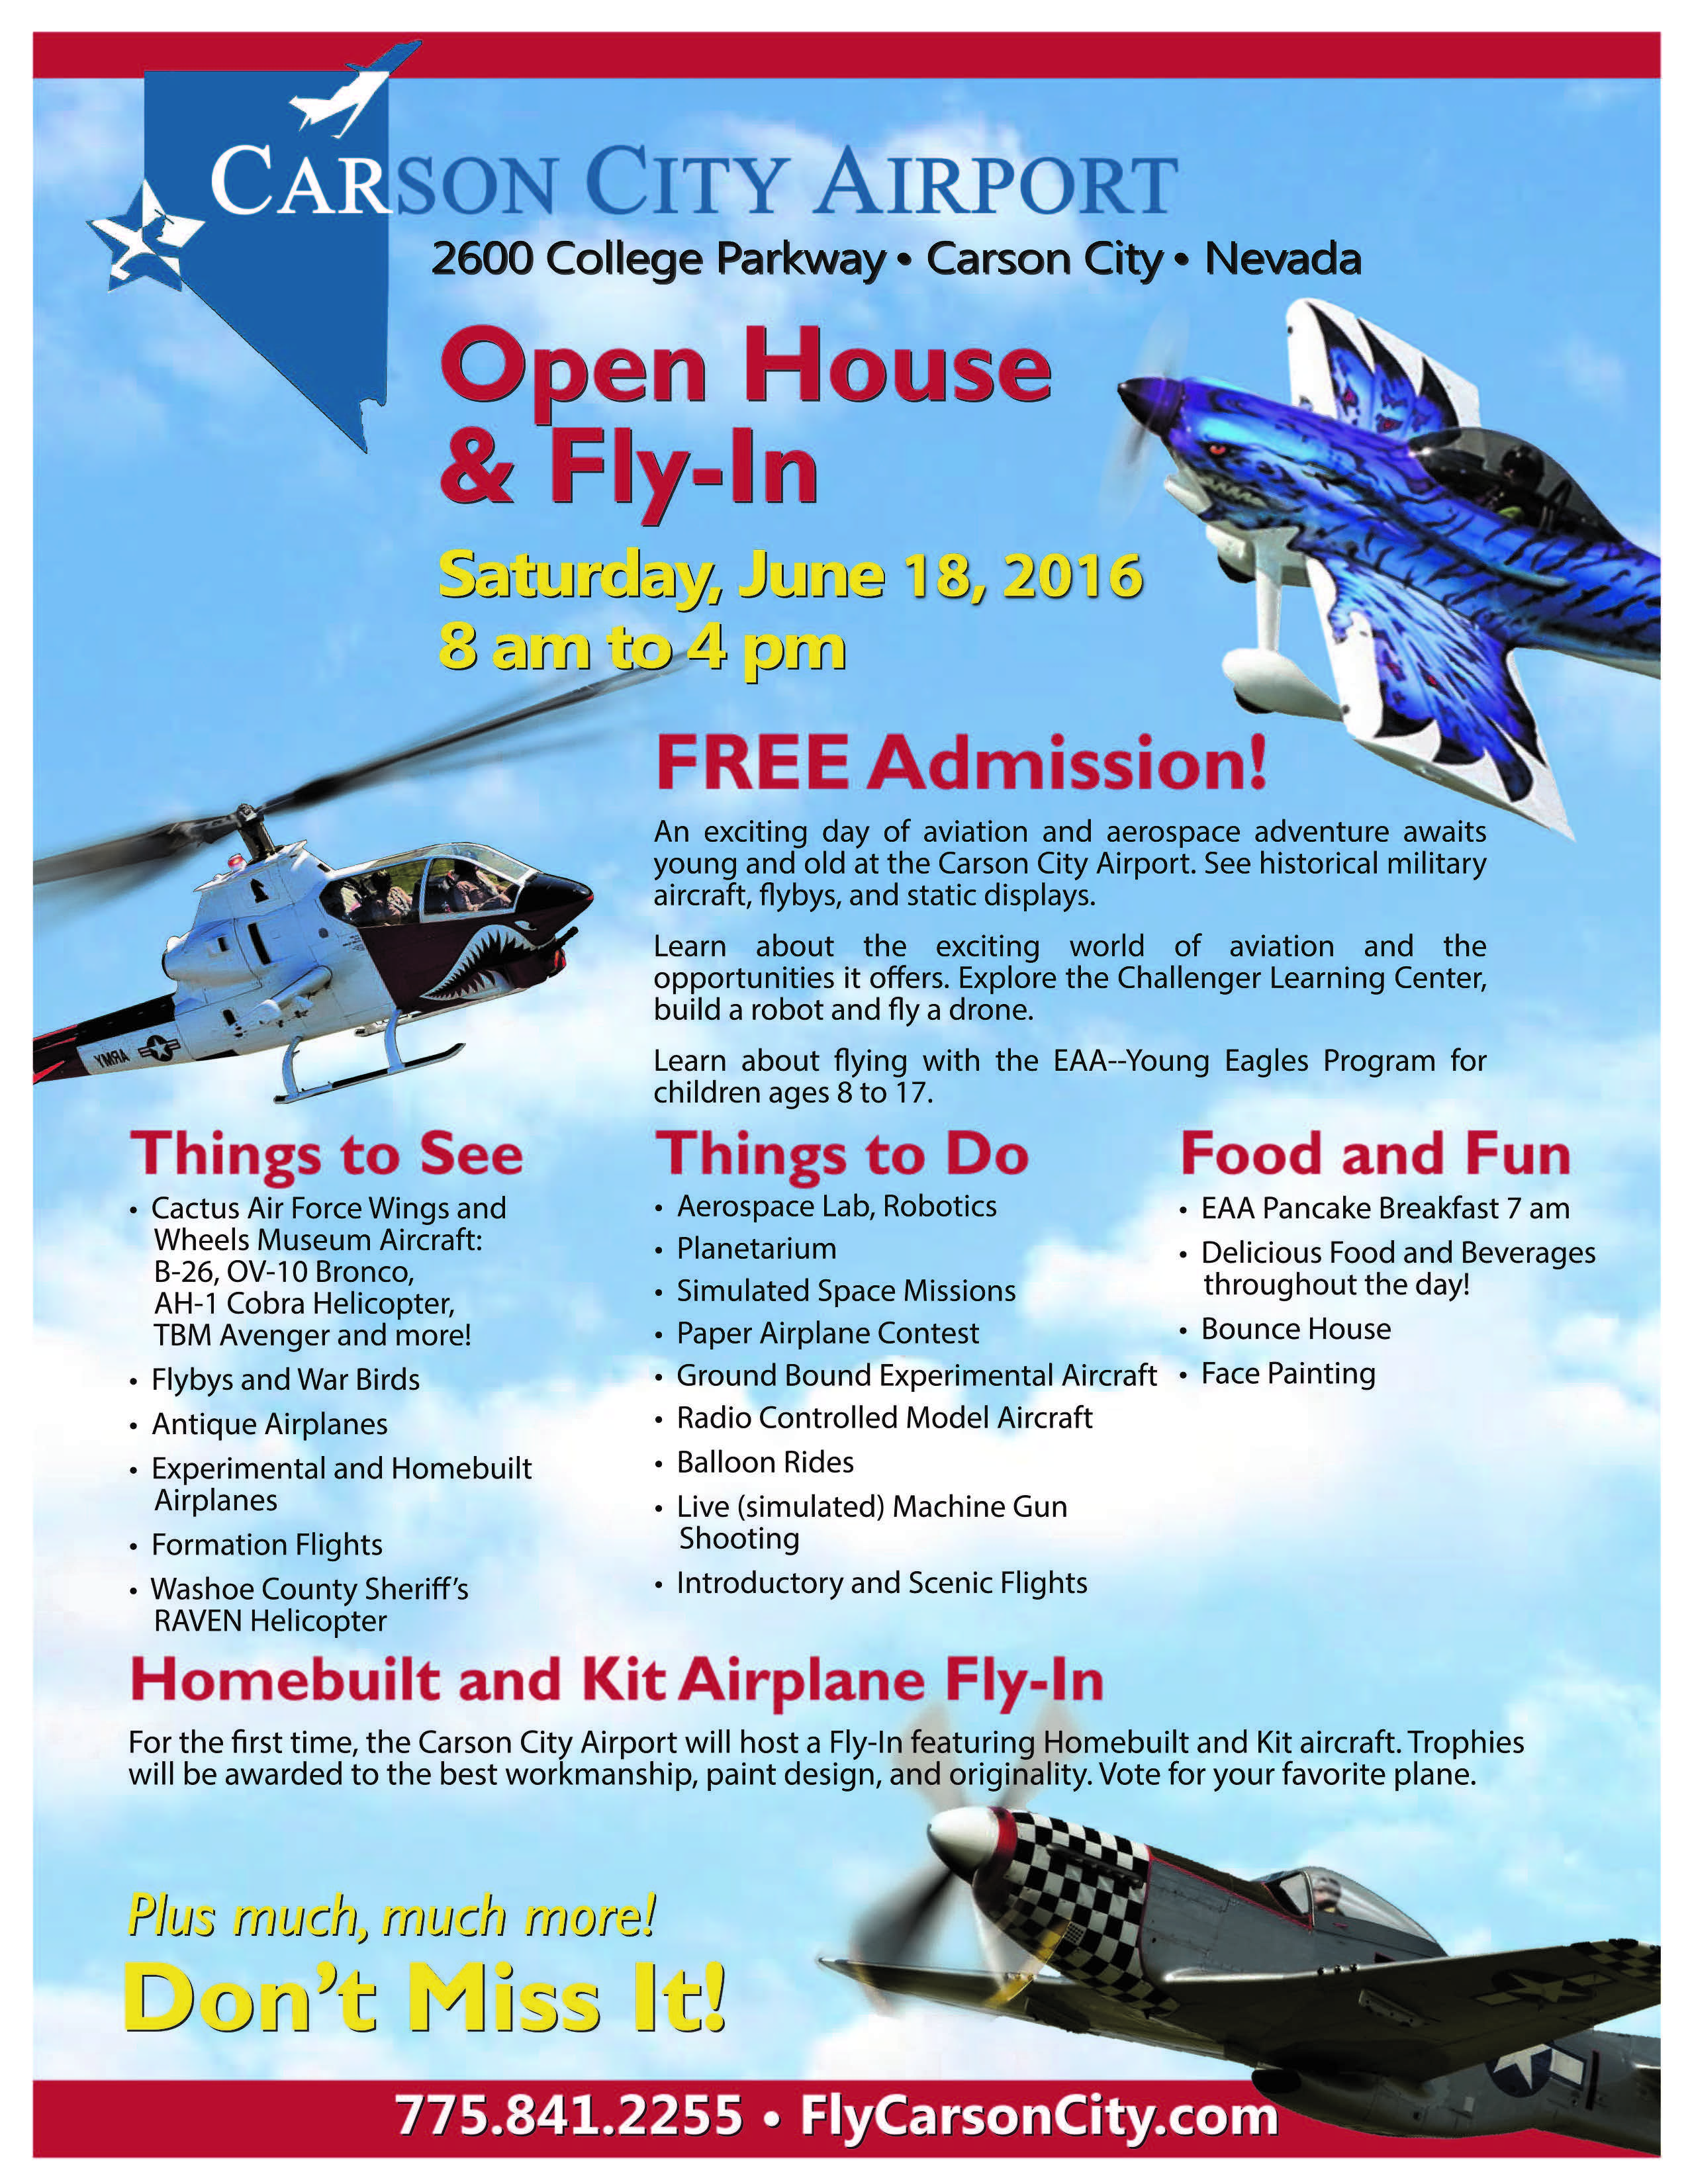 AirPort_Open house poster 2016